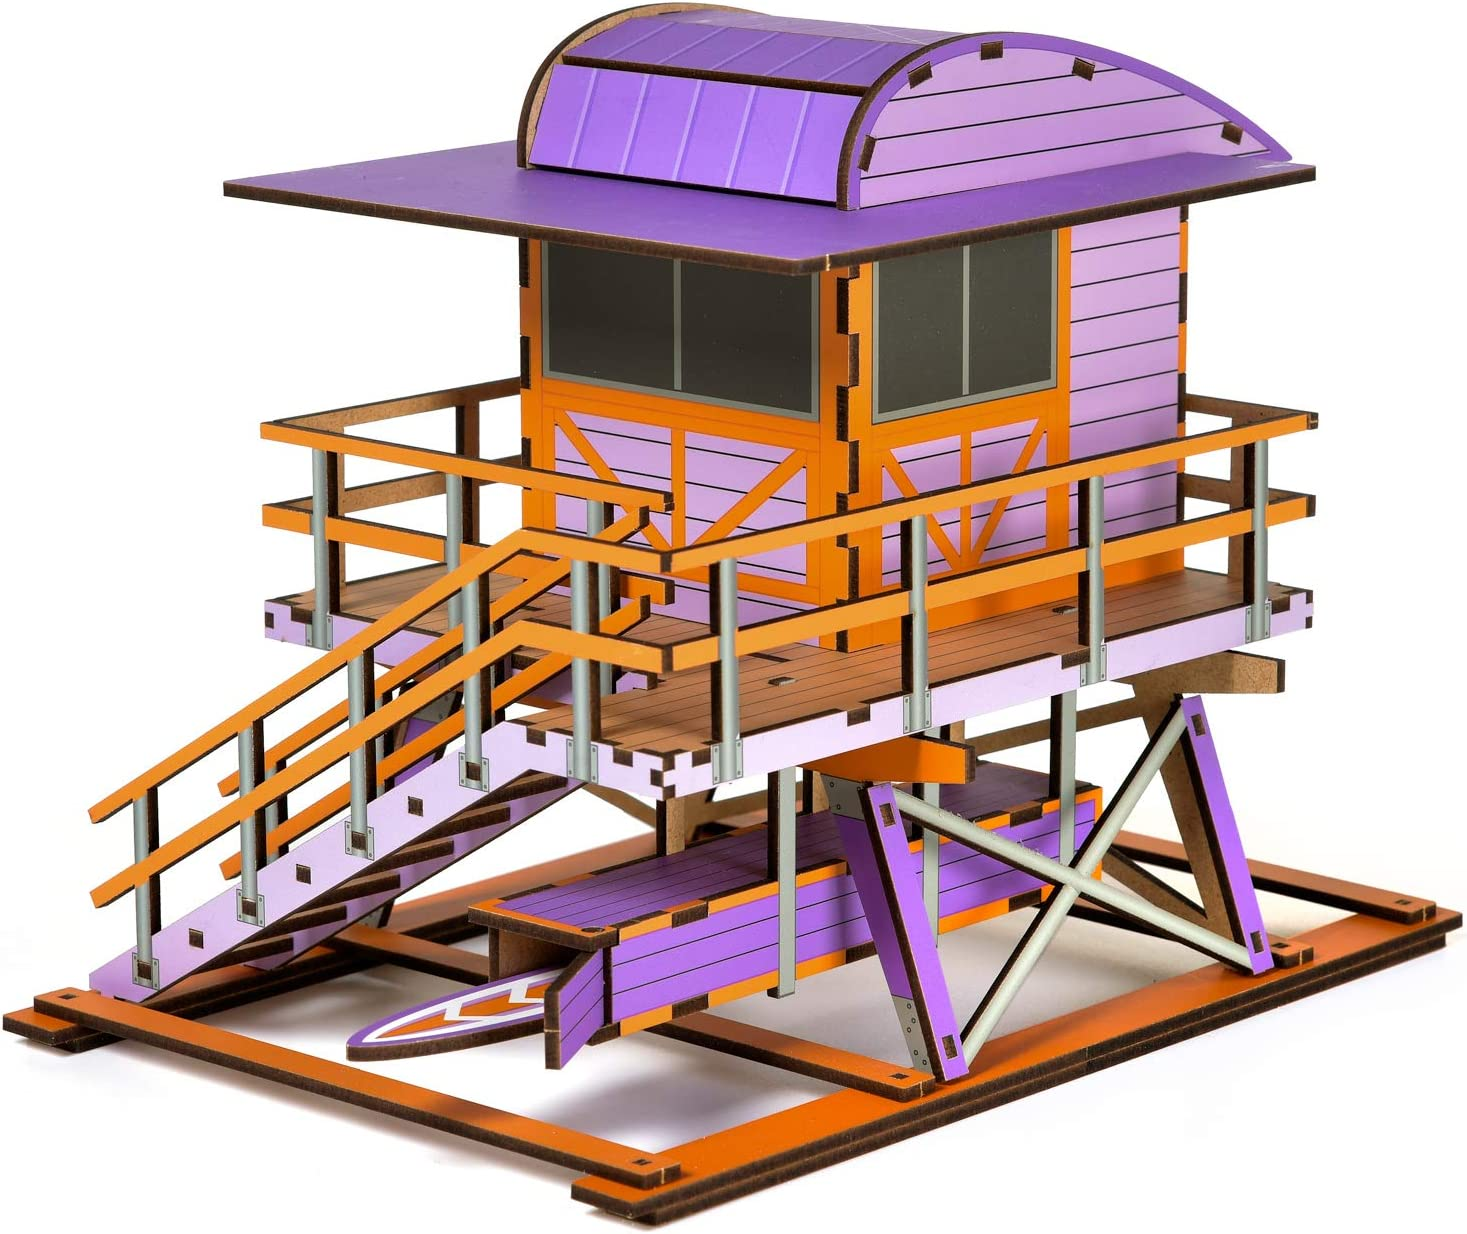 Miami Lifeguard Tower Model, Violette Color, DIY Wood Craft Puzzle, Decorative Souvenir for Assembly at Home, Highly Detailed Wooden Model, Easy Assembly